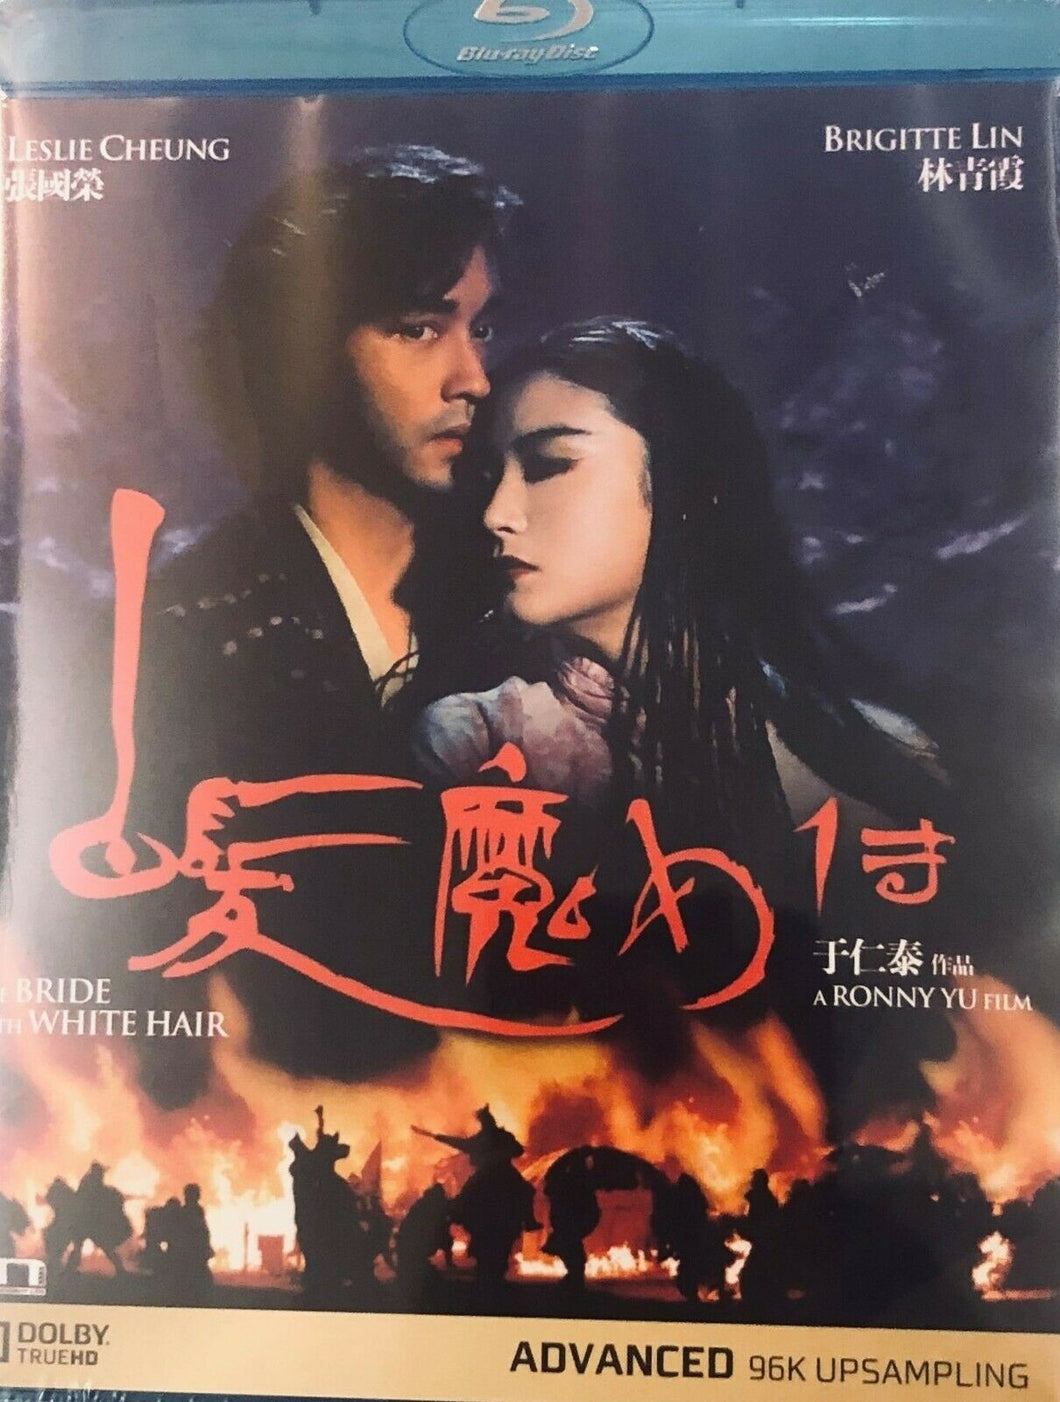 The Bride with White Hair 白髮魔女傳1993 (H.K Movie) BLU-RAY with English Subtitles (Region Free)